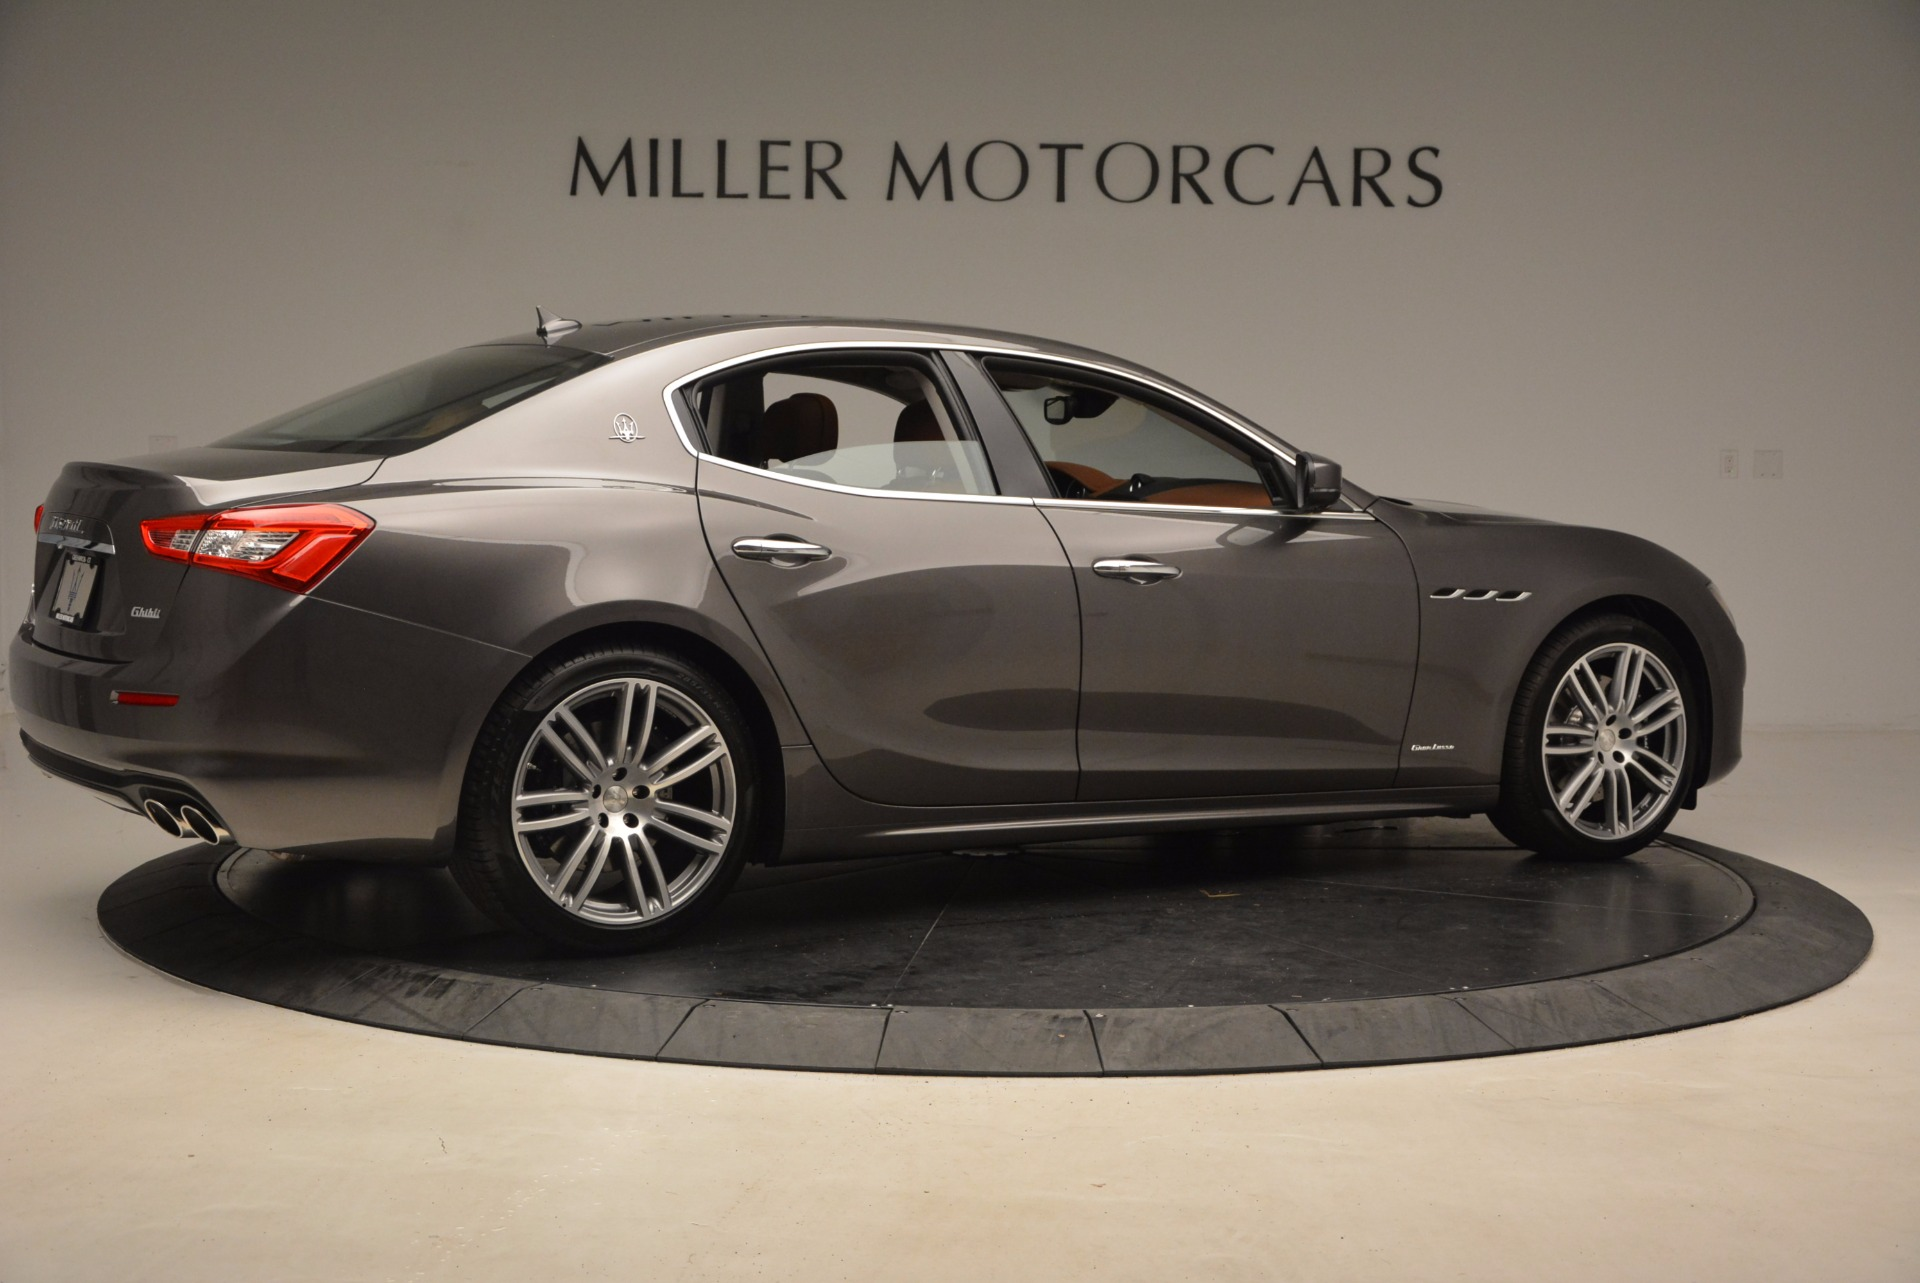 New 2018 Maserati Ghibli S Q4 GranLusso For Sale In Greenwich, CT. Alfa Romeo of Greenwich, M2005 1896_p8